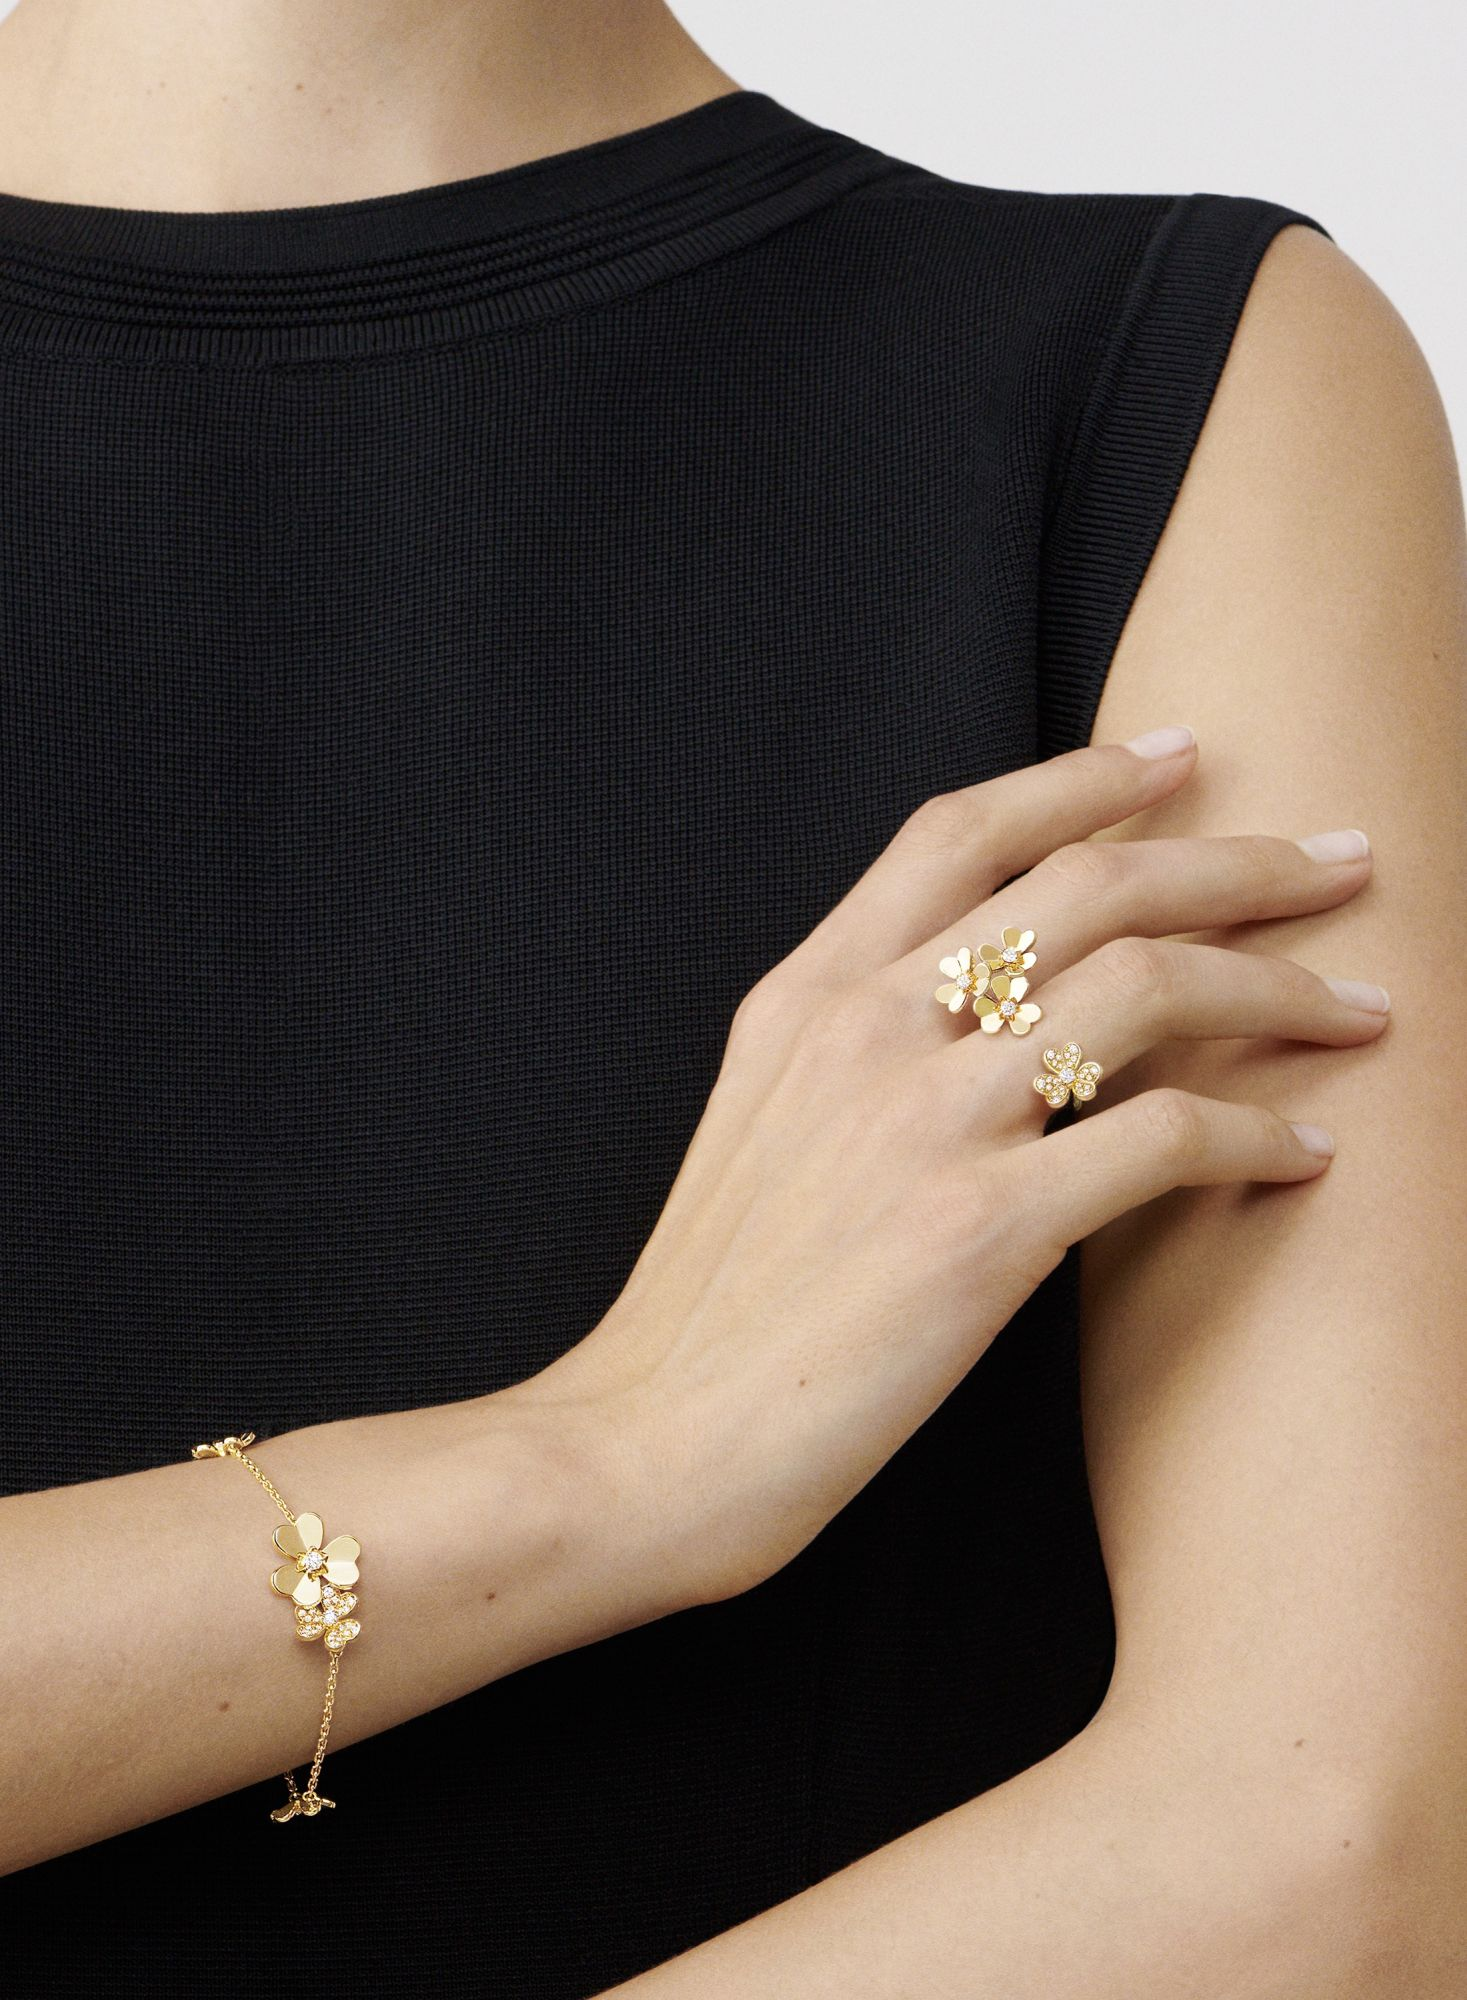 Van Cleef & Arpels Welcomes Spring With New Additions To Its Frivole Collection